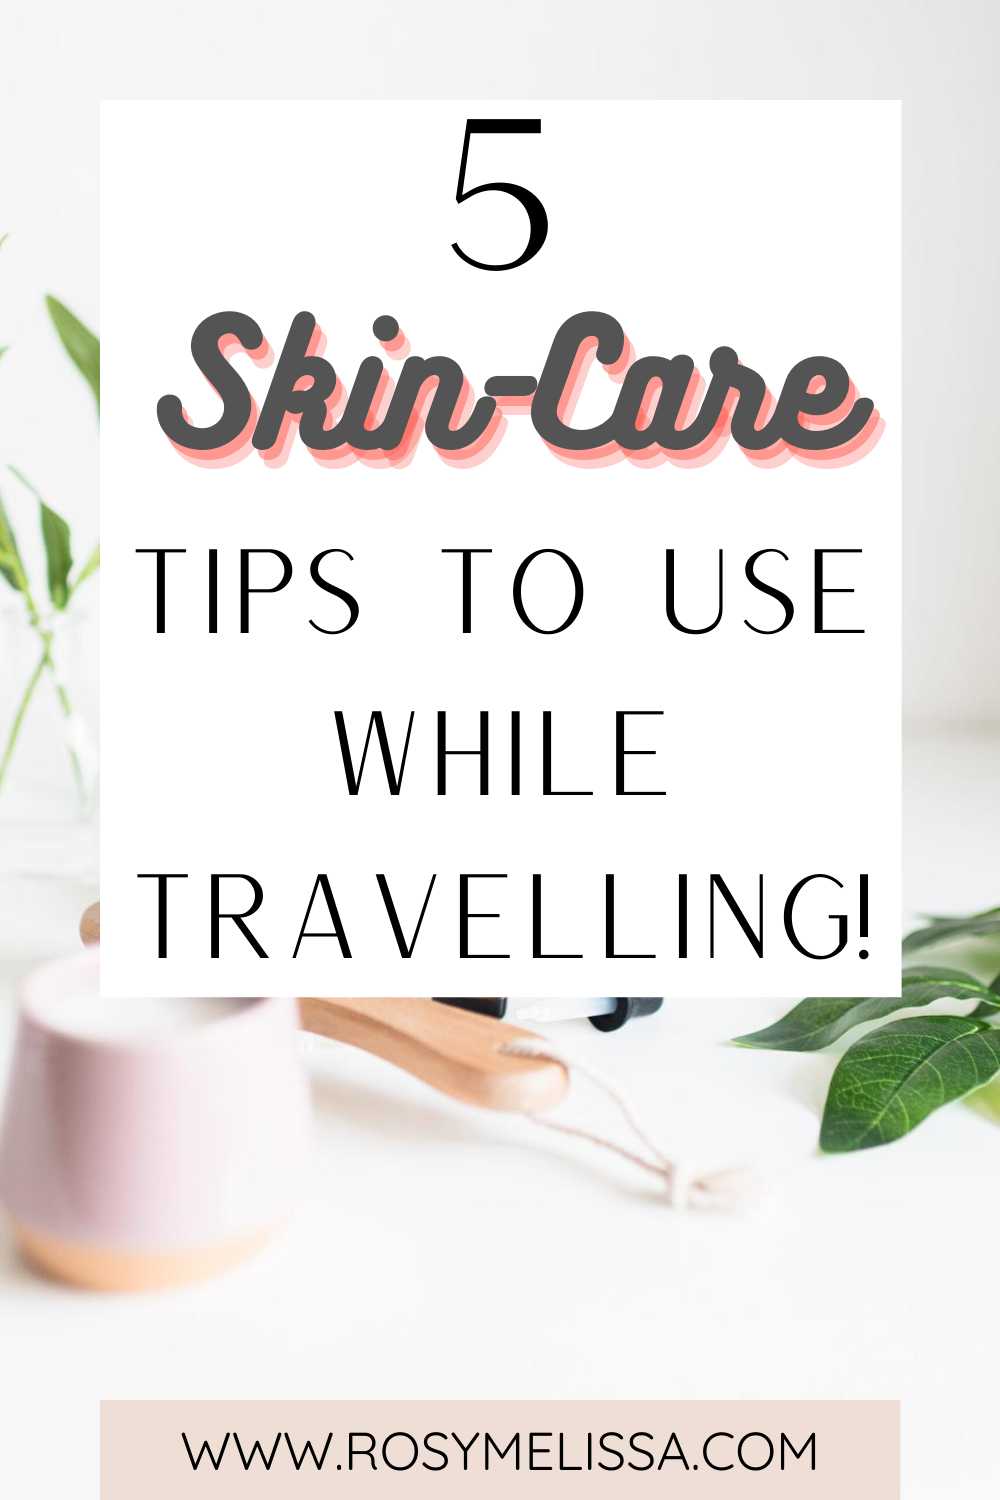 skincare tips for travel, how to take care of your skin while travelling, travel tips